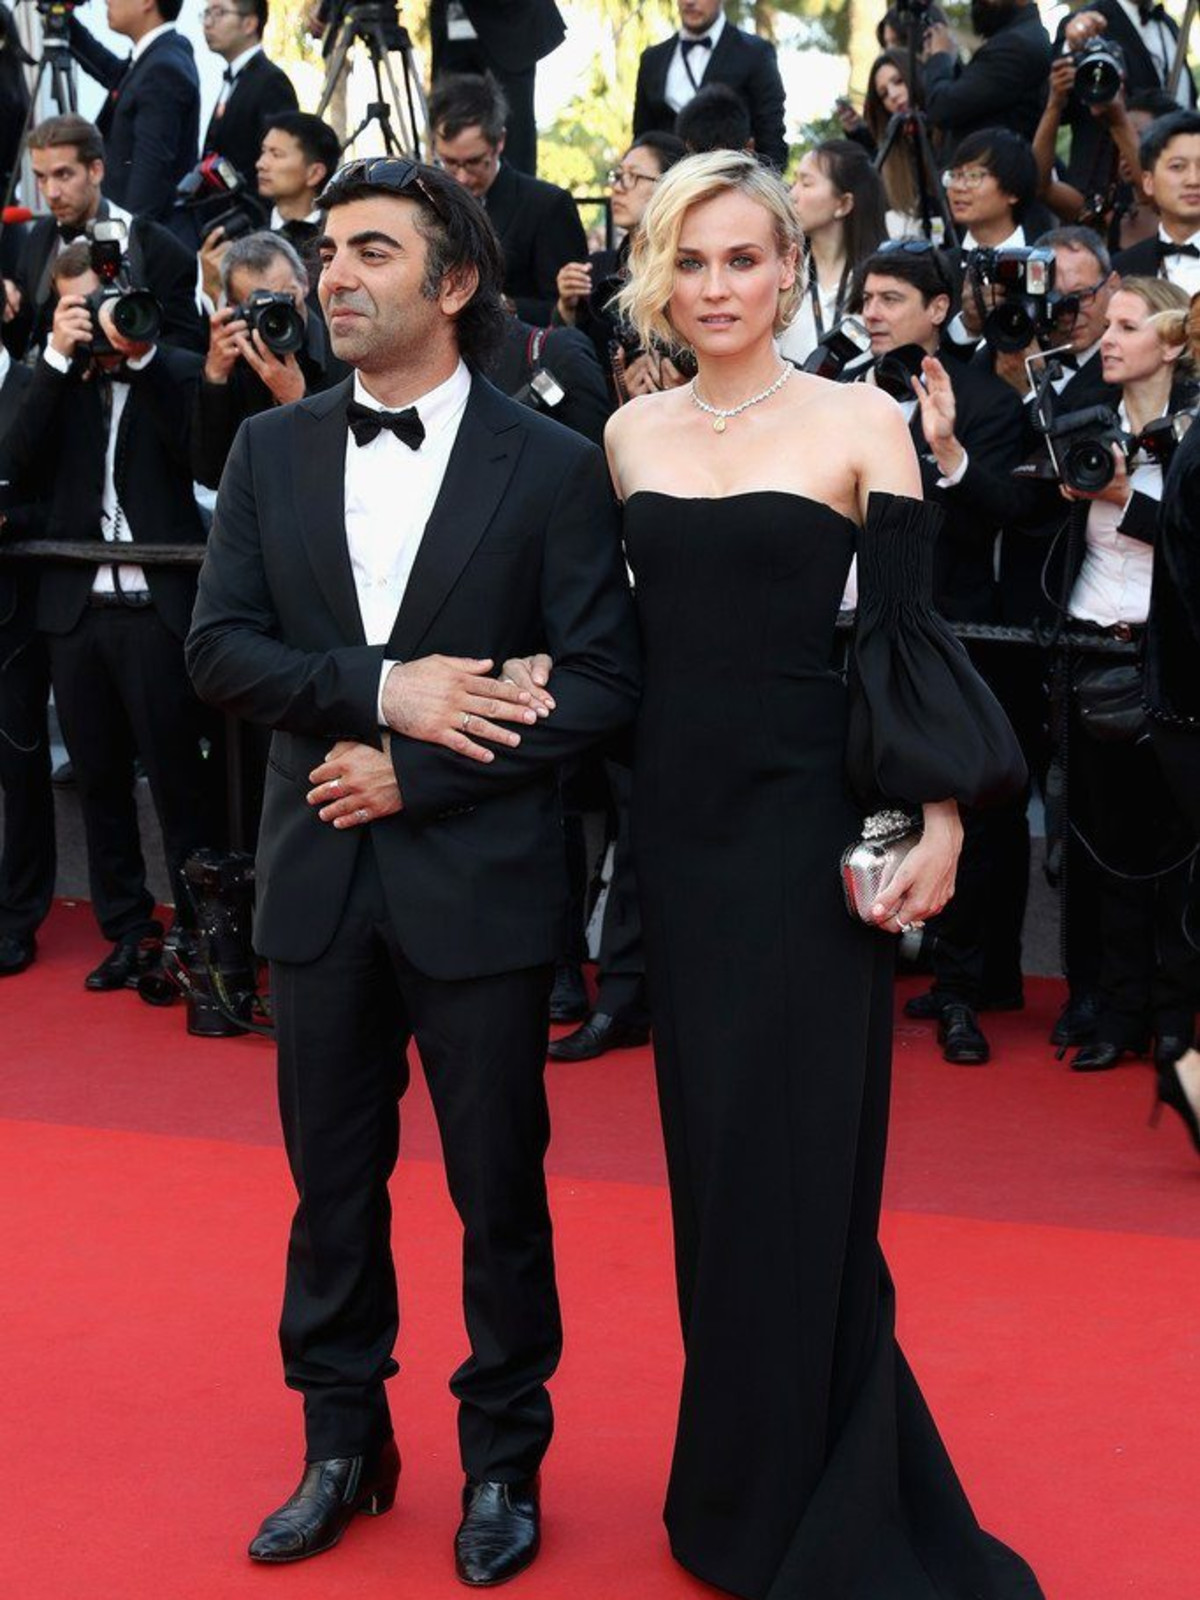 Diane Kruger at Cannes Film Festival in Jonathan Simkhai gown